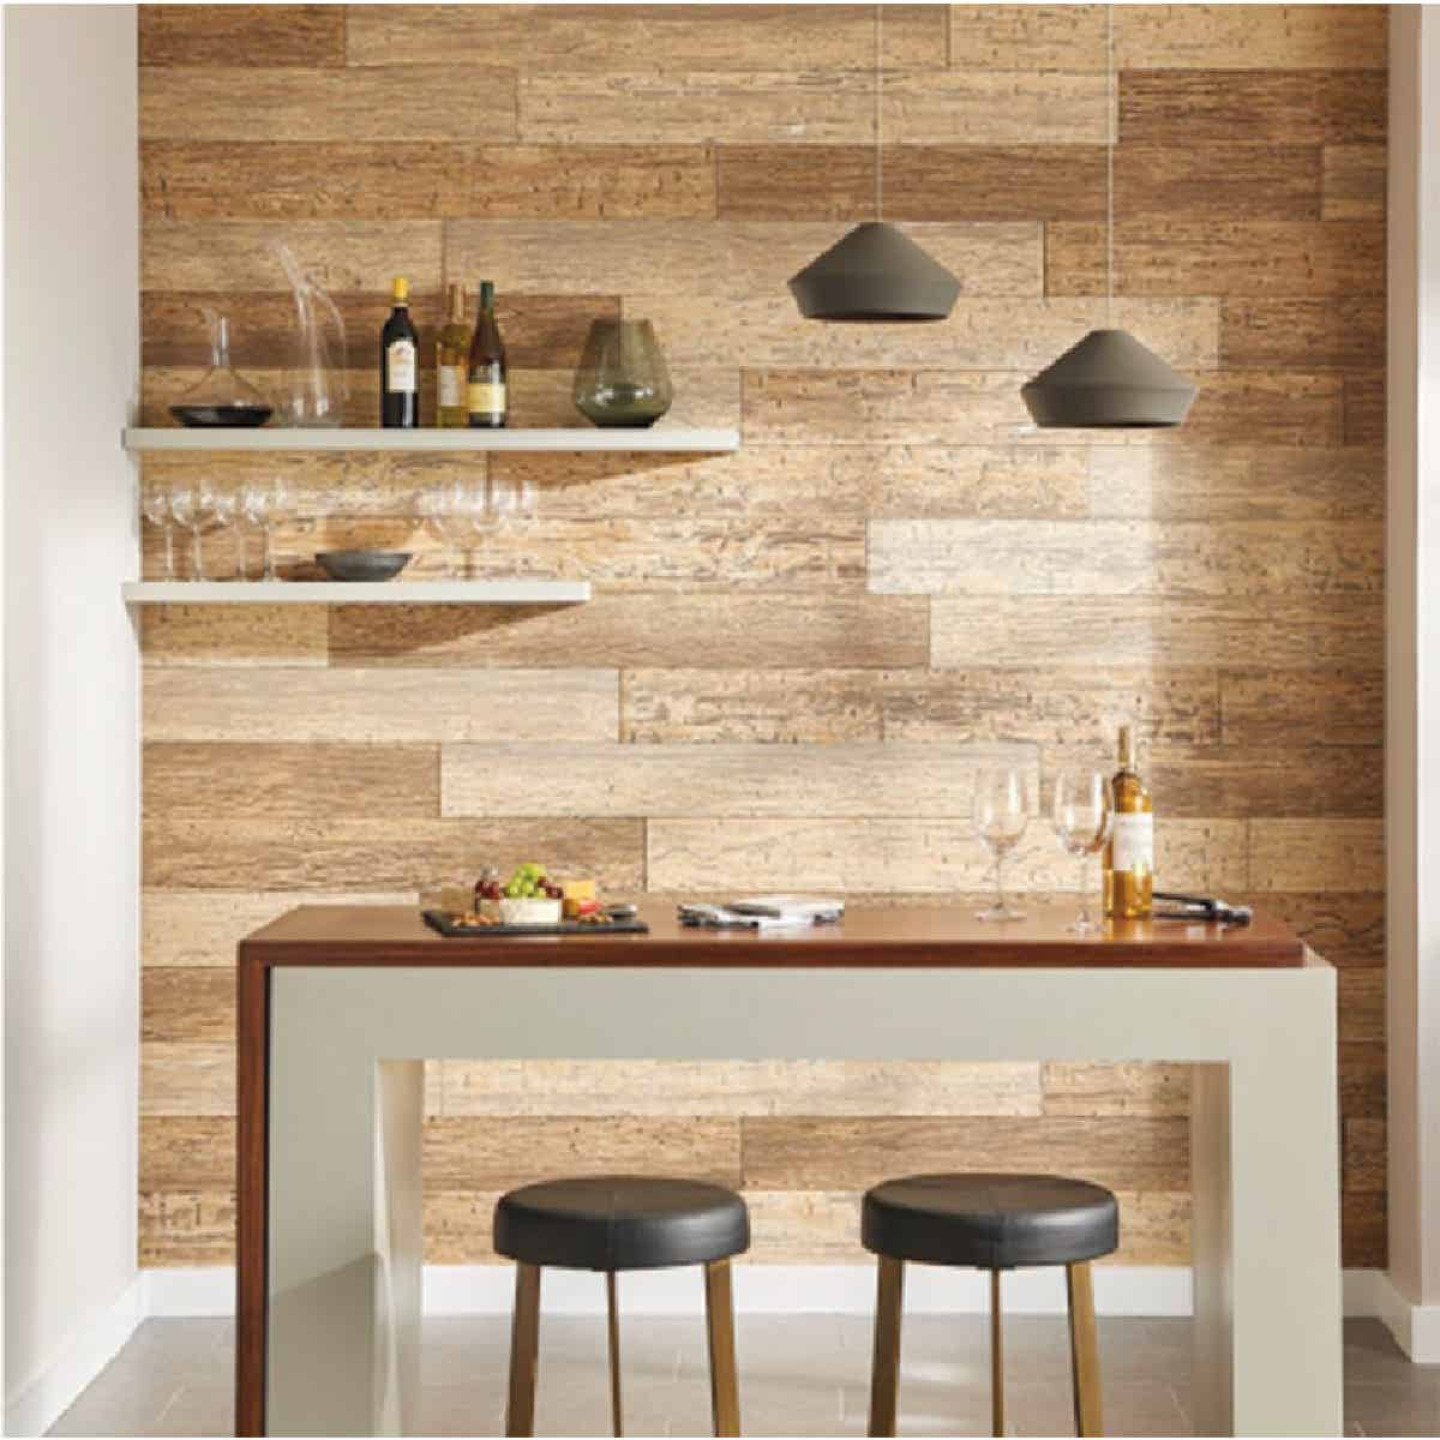 DPI 6 In. W. x 48 In. L. x 1/4 In. Thick Driftwood Rustic Wall Plank (12-Pack) Image 3